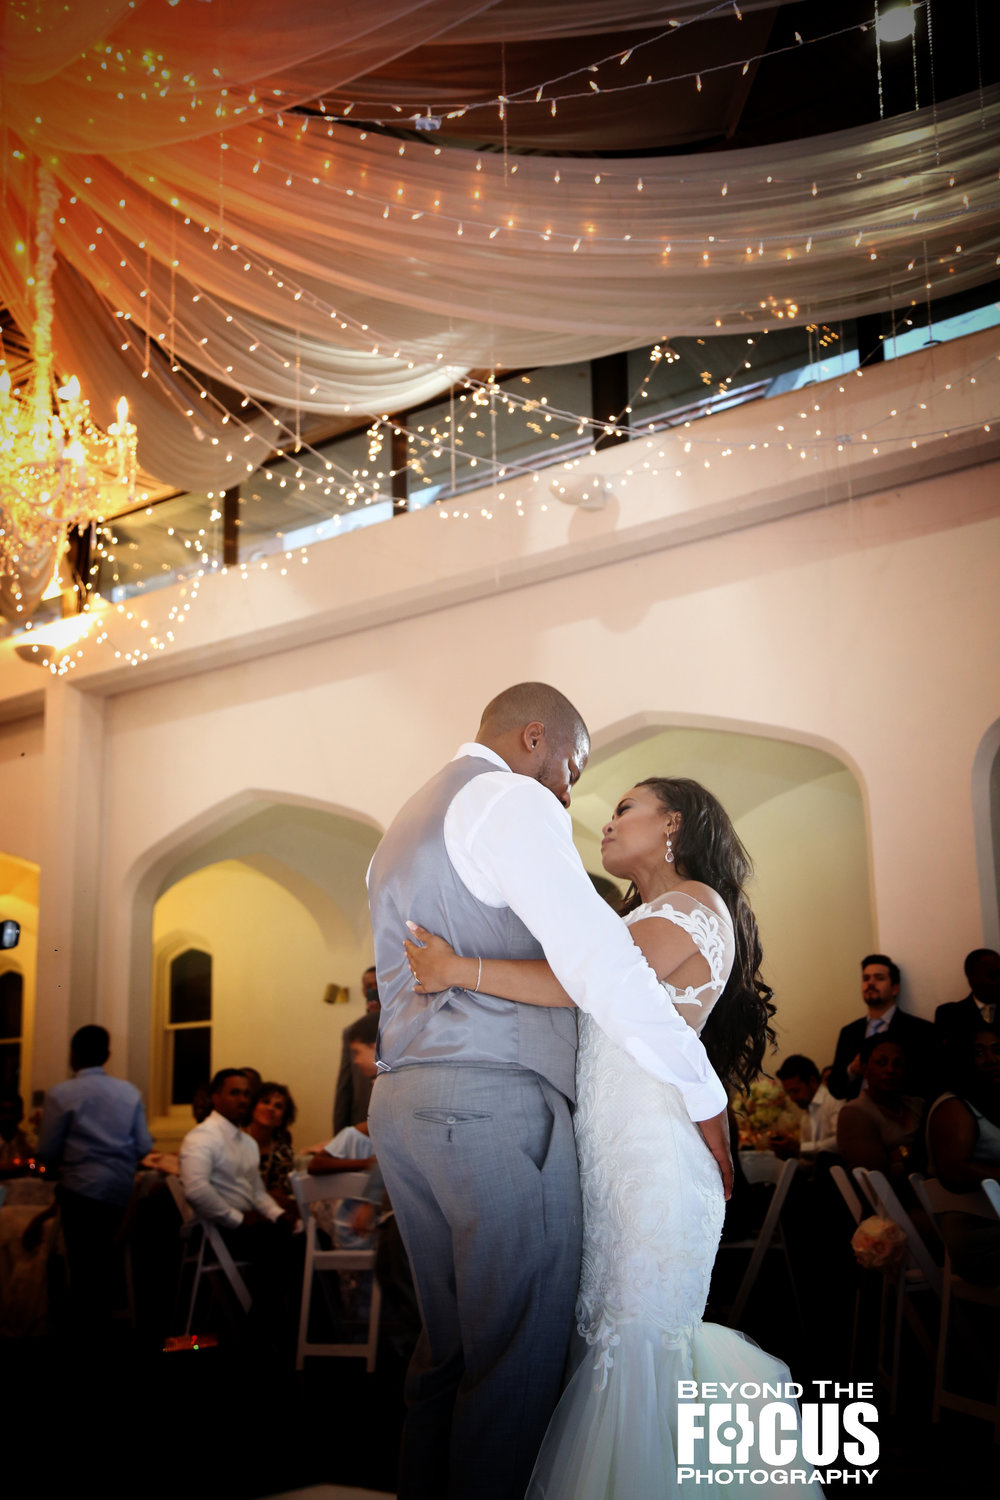 Christan_Imani_WeddingReception_W_110.jpg